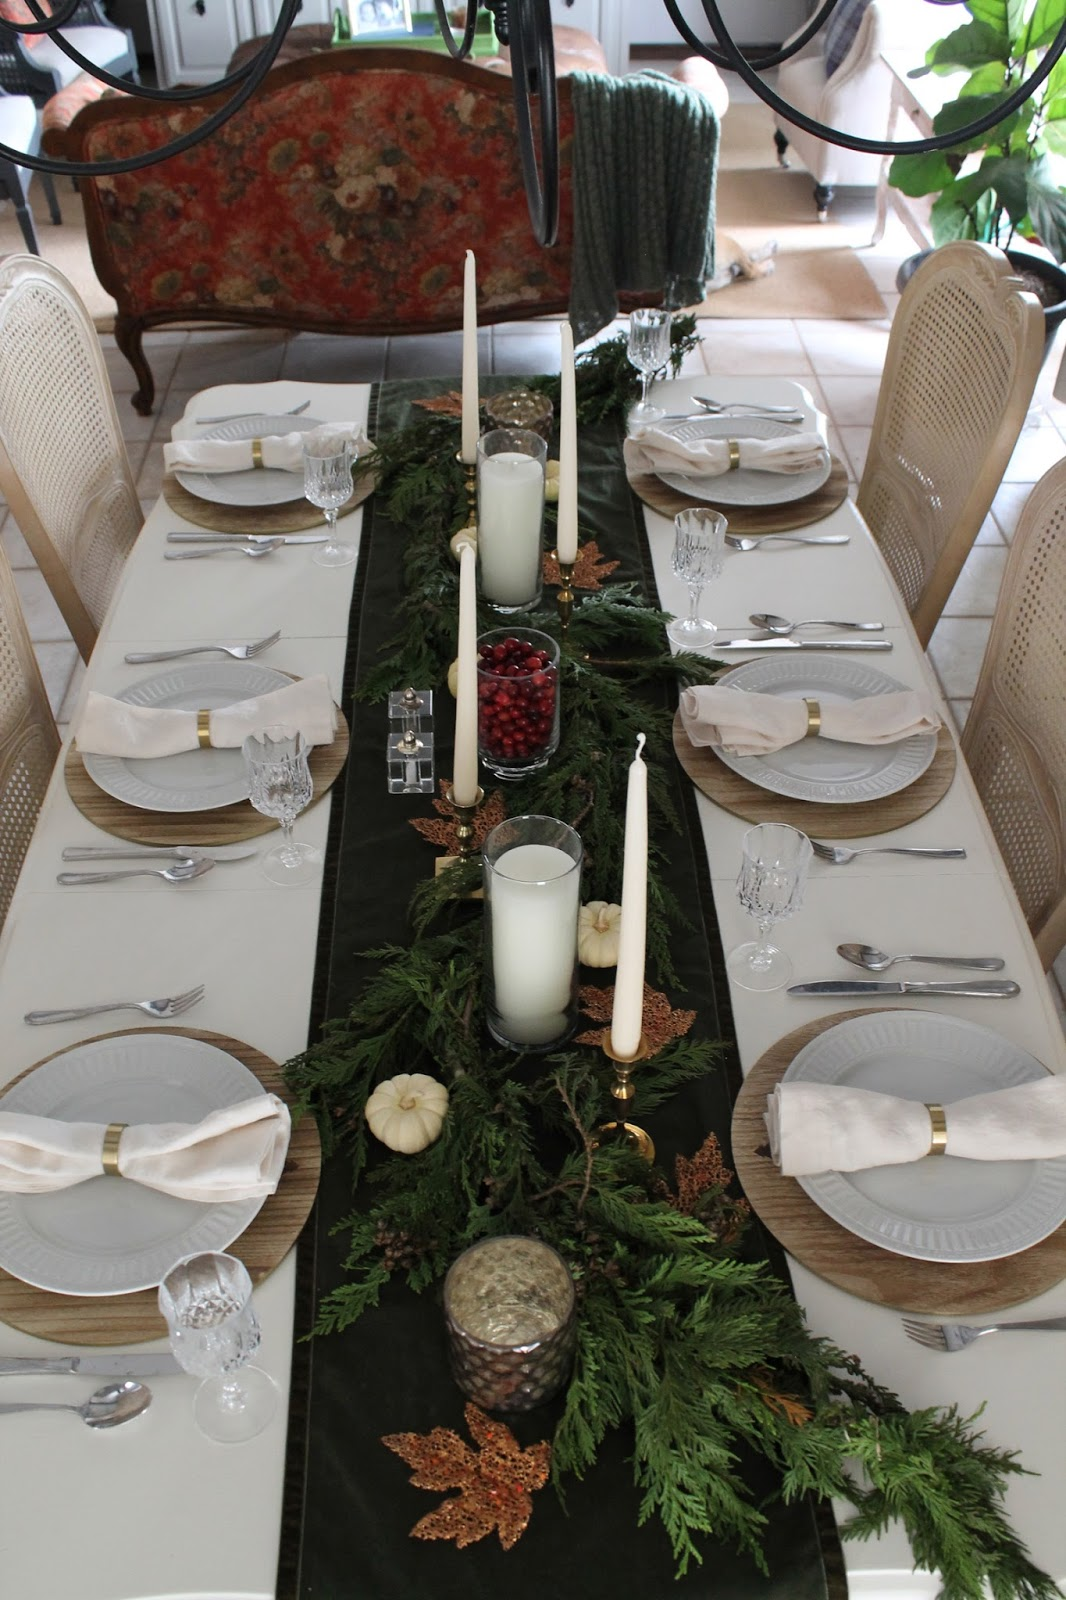 Our White Dinnerware Is Next And For The Napkins I Chose These Cream Linen From Crate Barrel With A Golden Napkin Ring Sur La Table